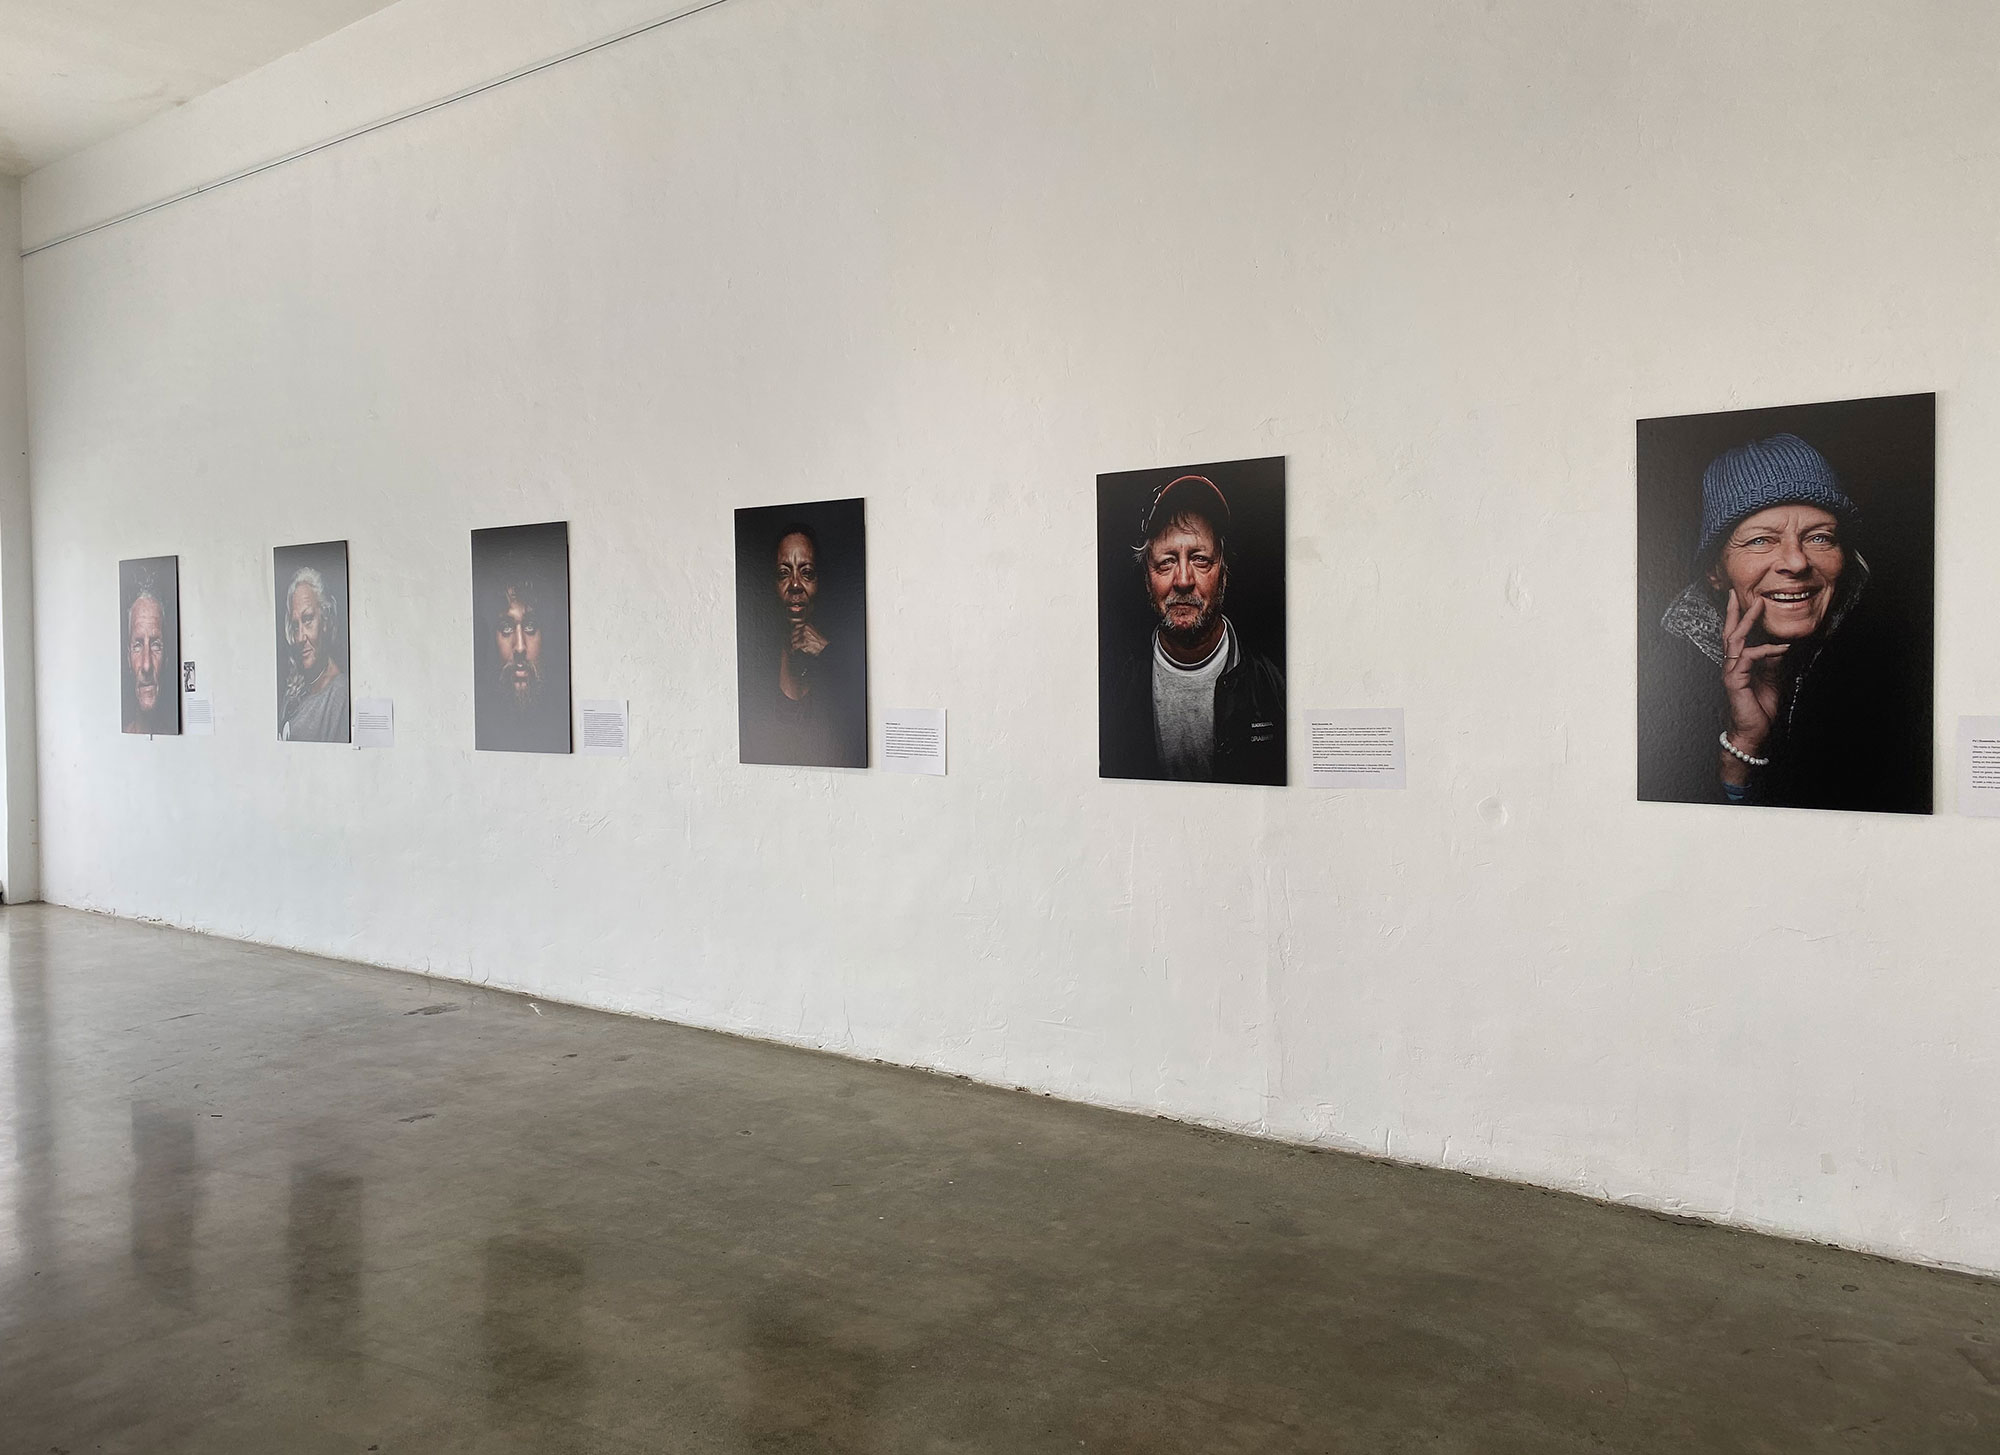 Art Exhibition Shares Portraits, Stories Of The Unsheltered In Oceanside